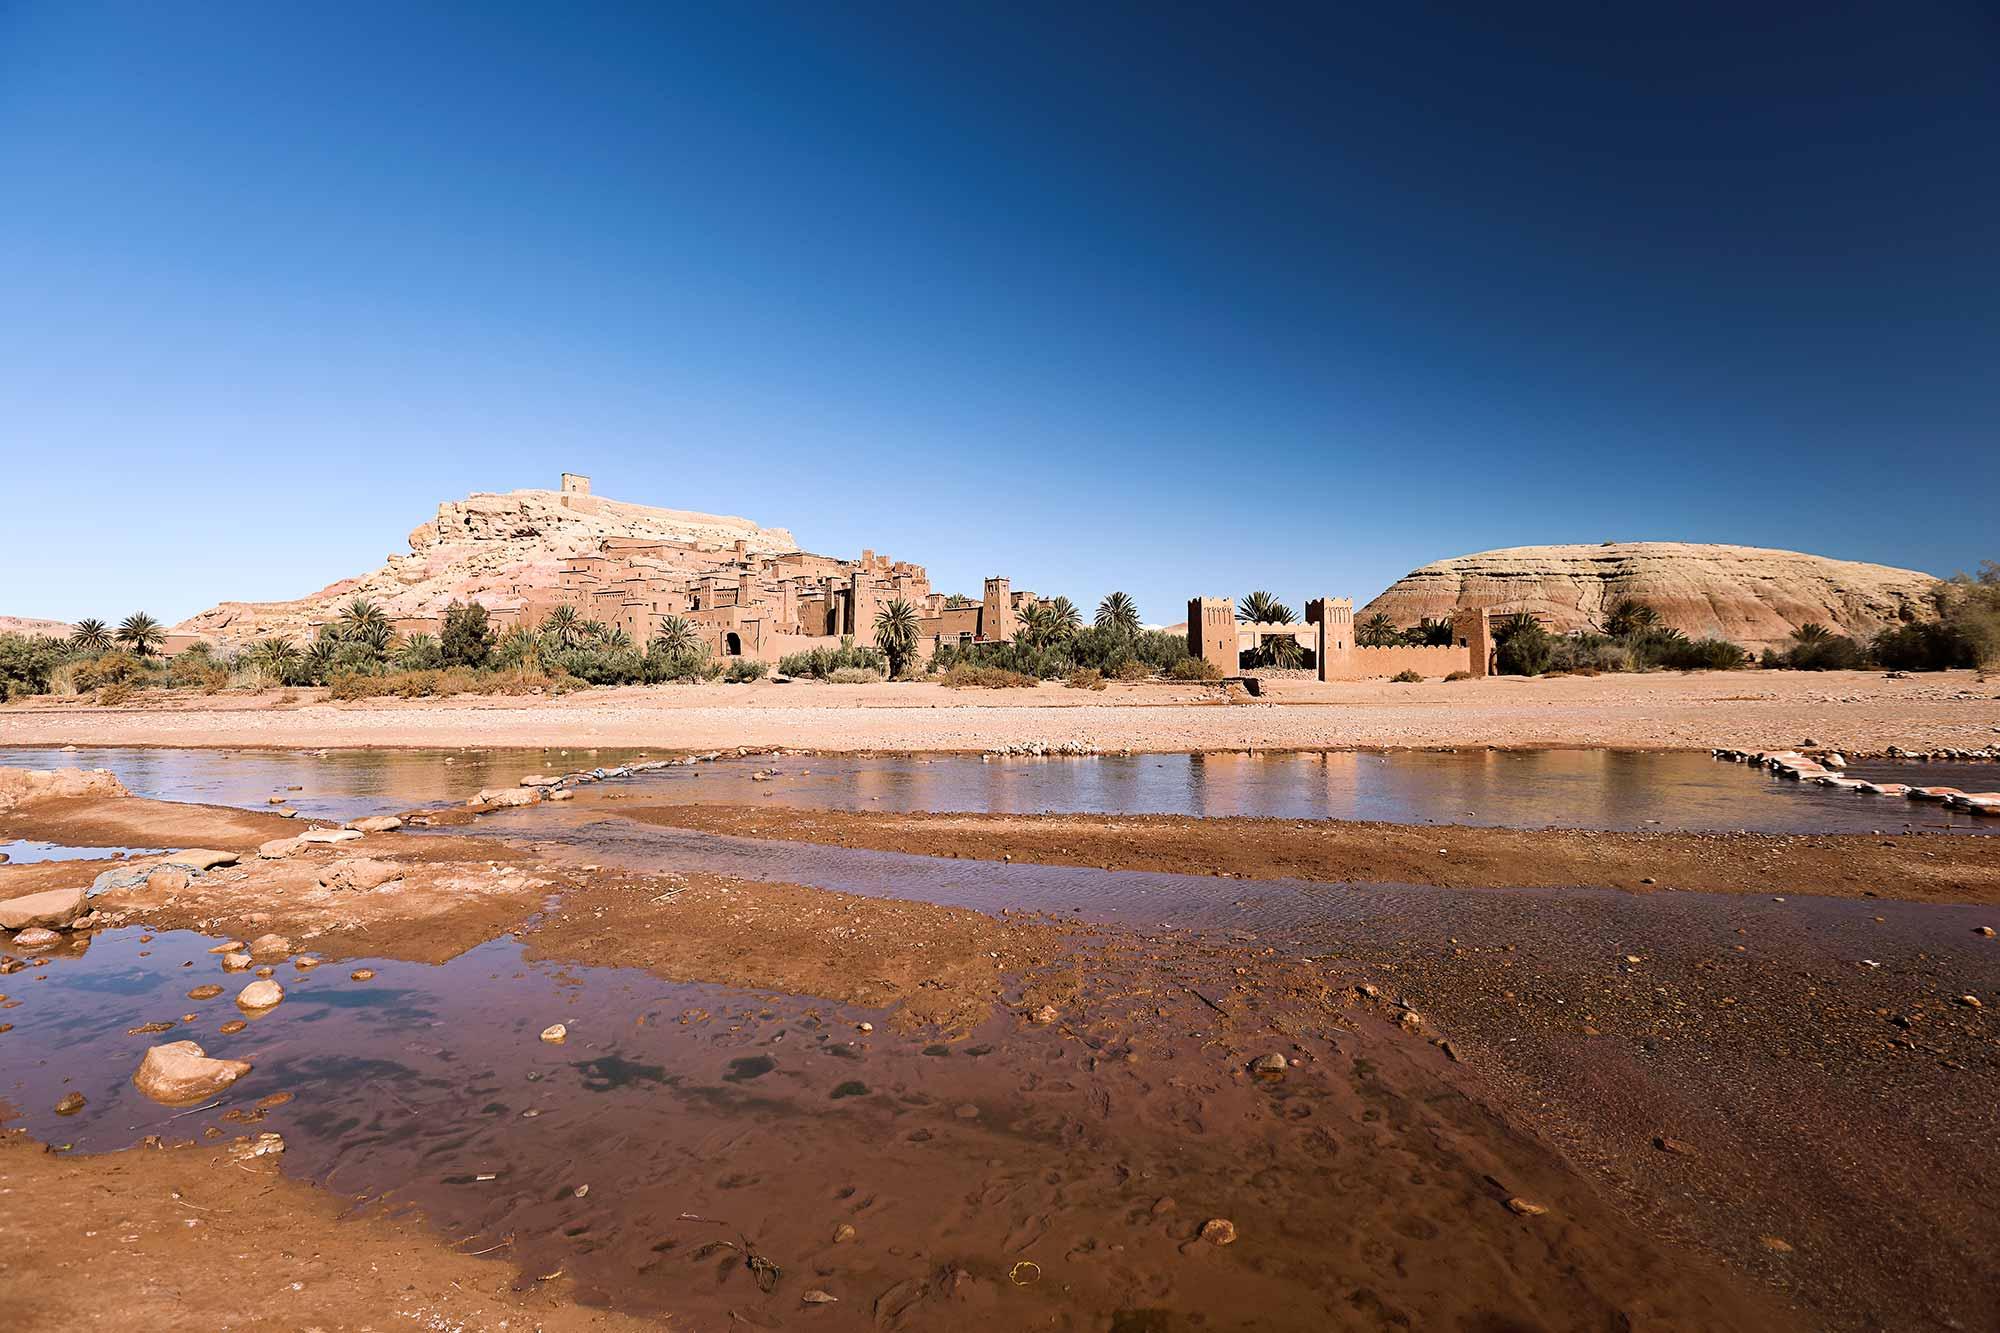 Ait Ben Haddou is famous because of Hollywood productions like Gladiator or Game of Thrones. But the city itself would be wort a visit, even without the star-factor. © ULLI MAIER & NISA MAIER